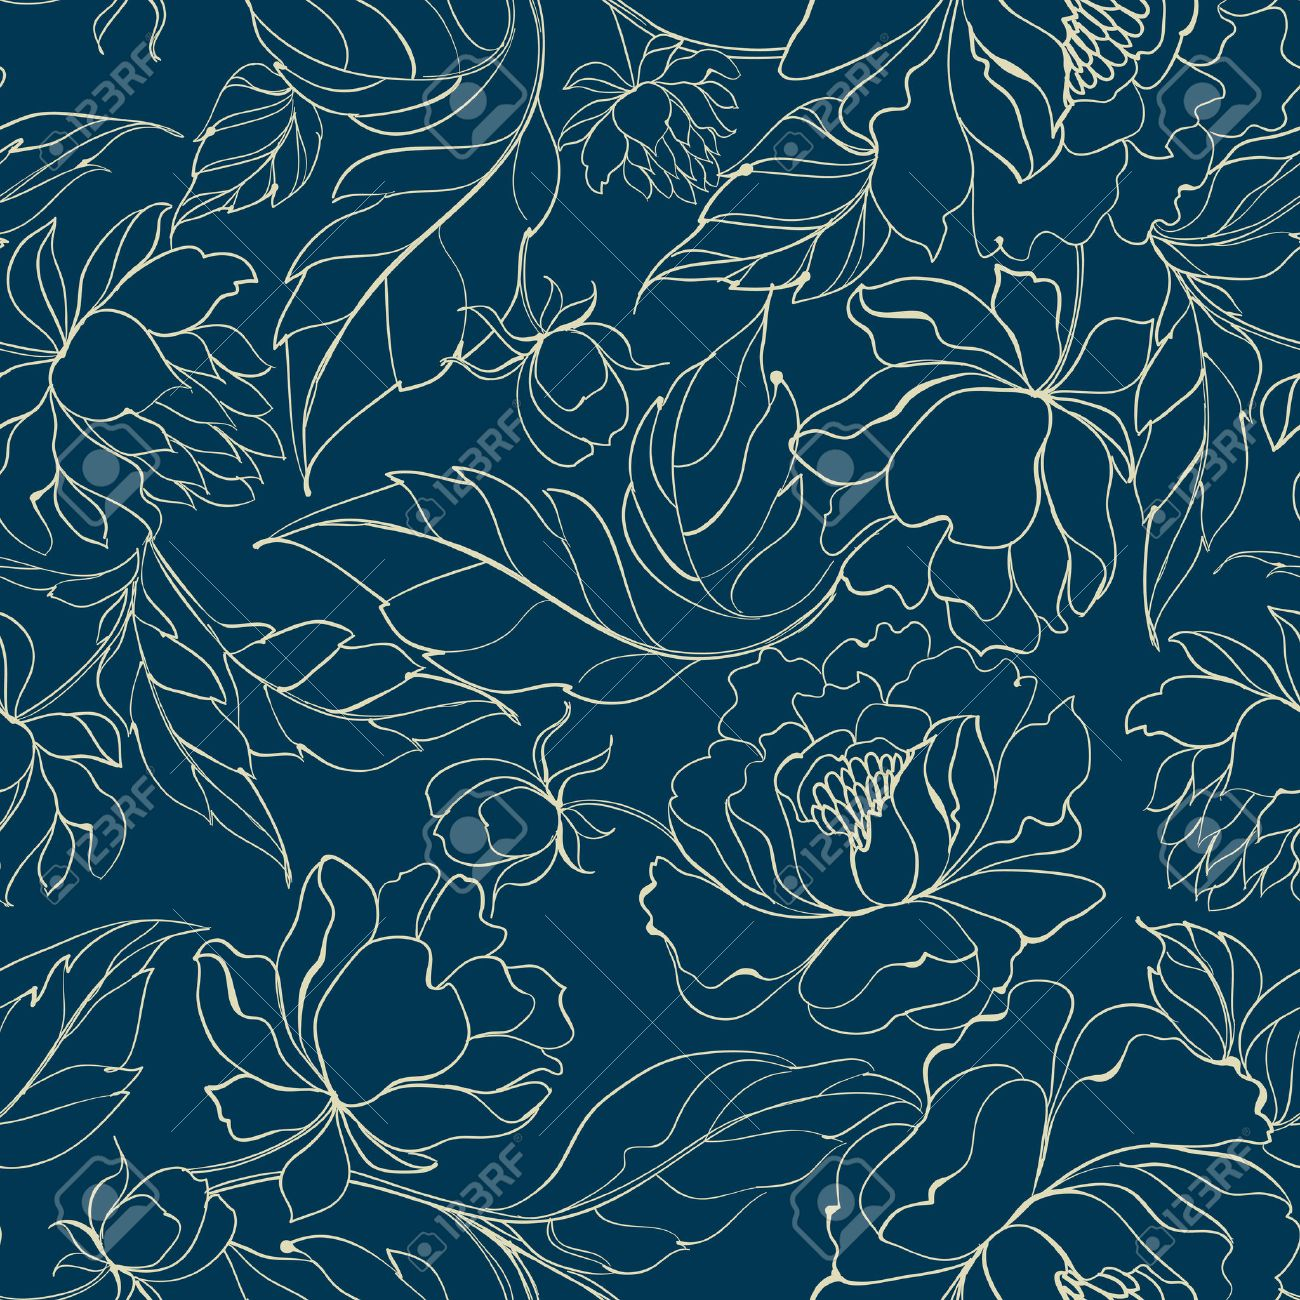 Seamless Floral Pattern With Peony Luxurious Wallpaper In Vintage Style On